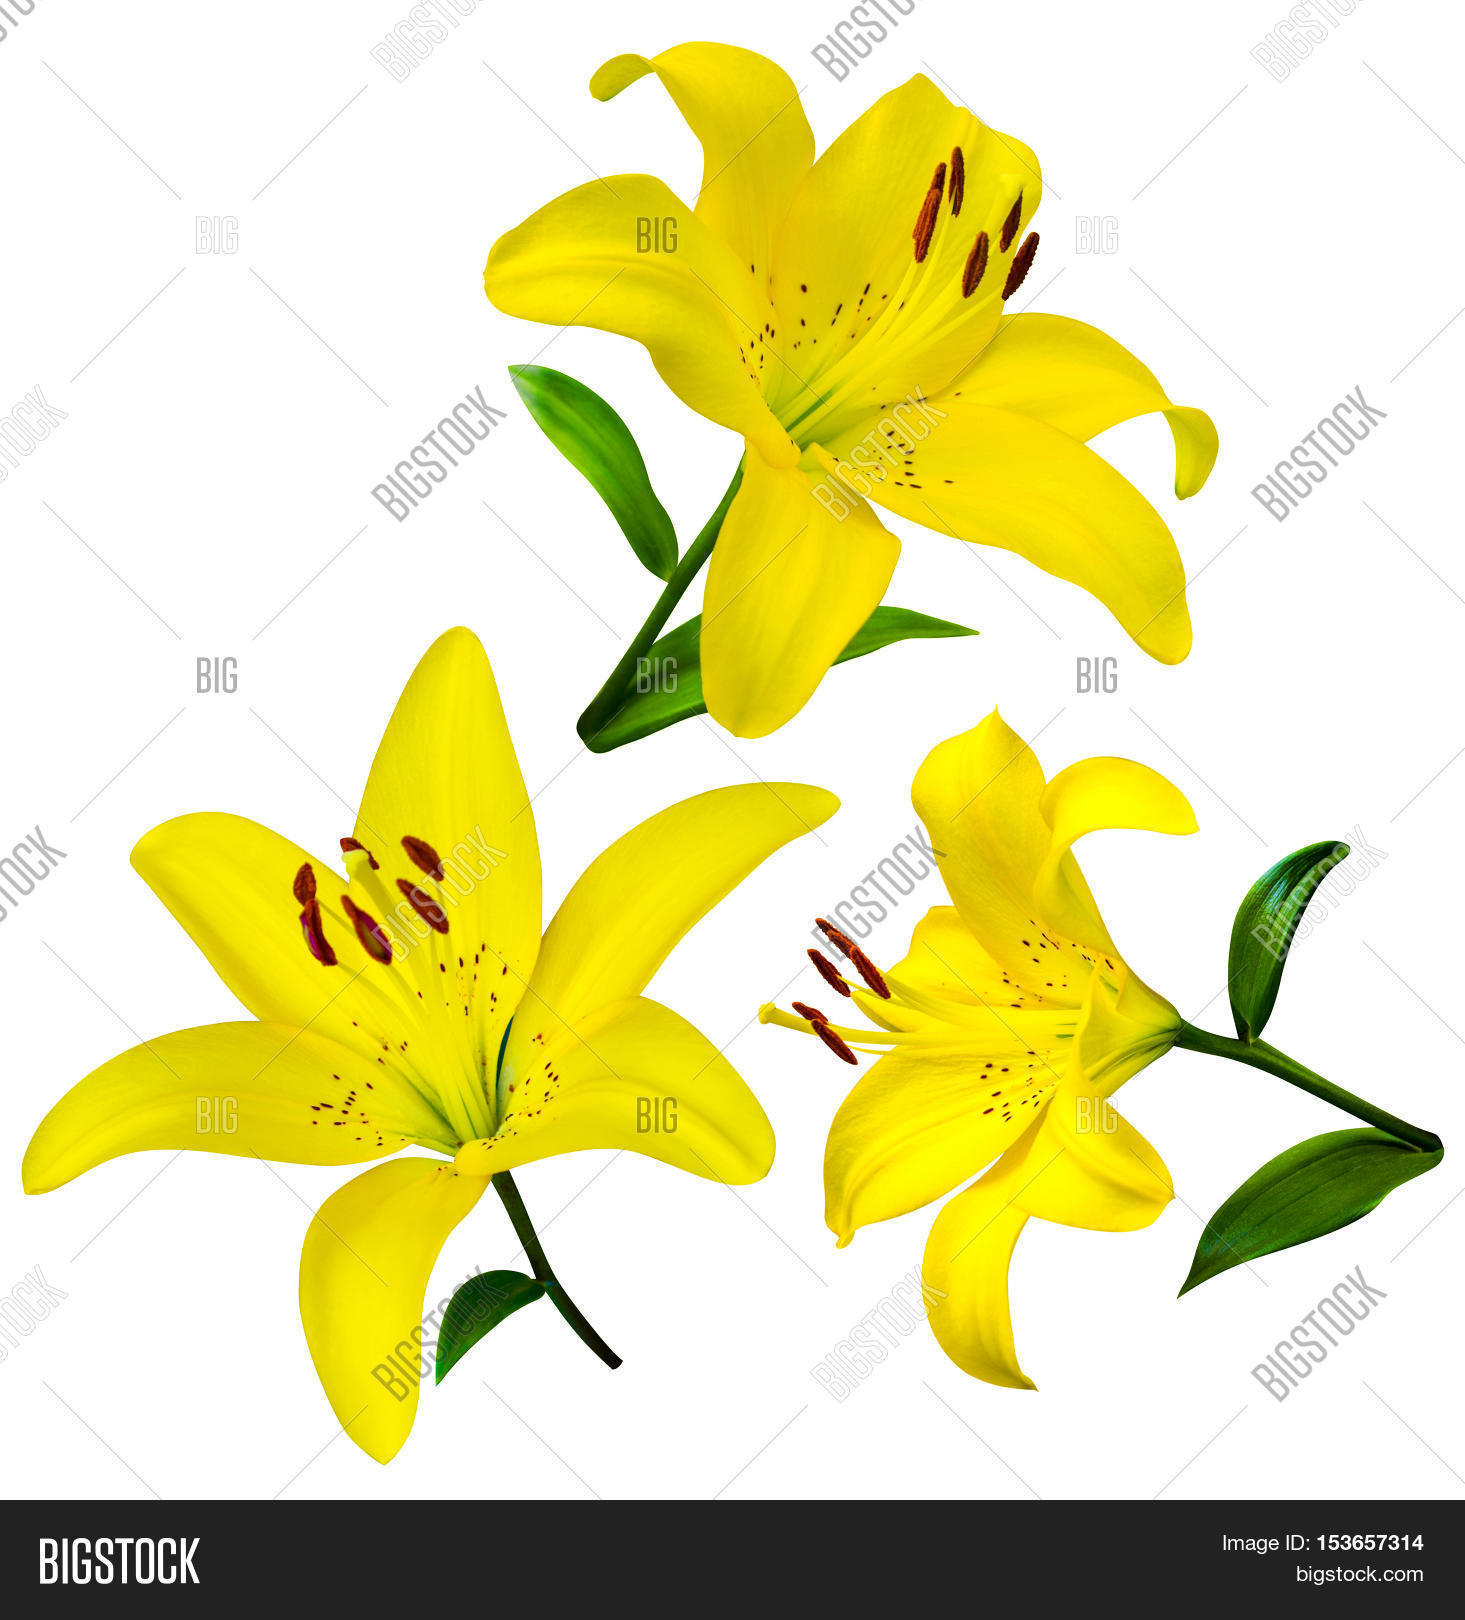 Lily Flowers Isolated Image Photo Free Trial Bigstock